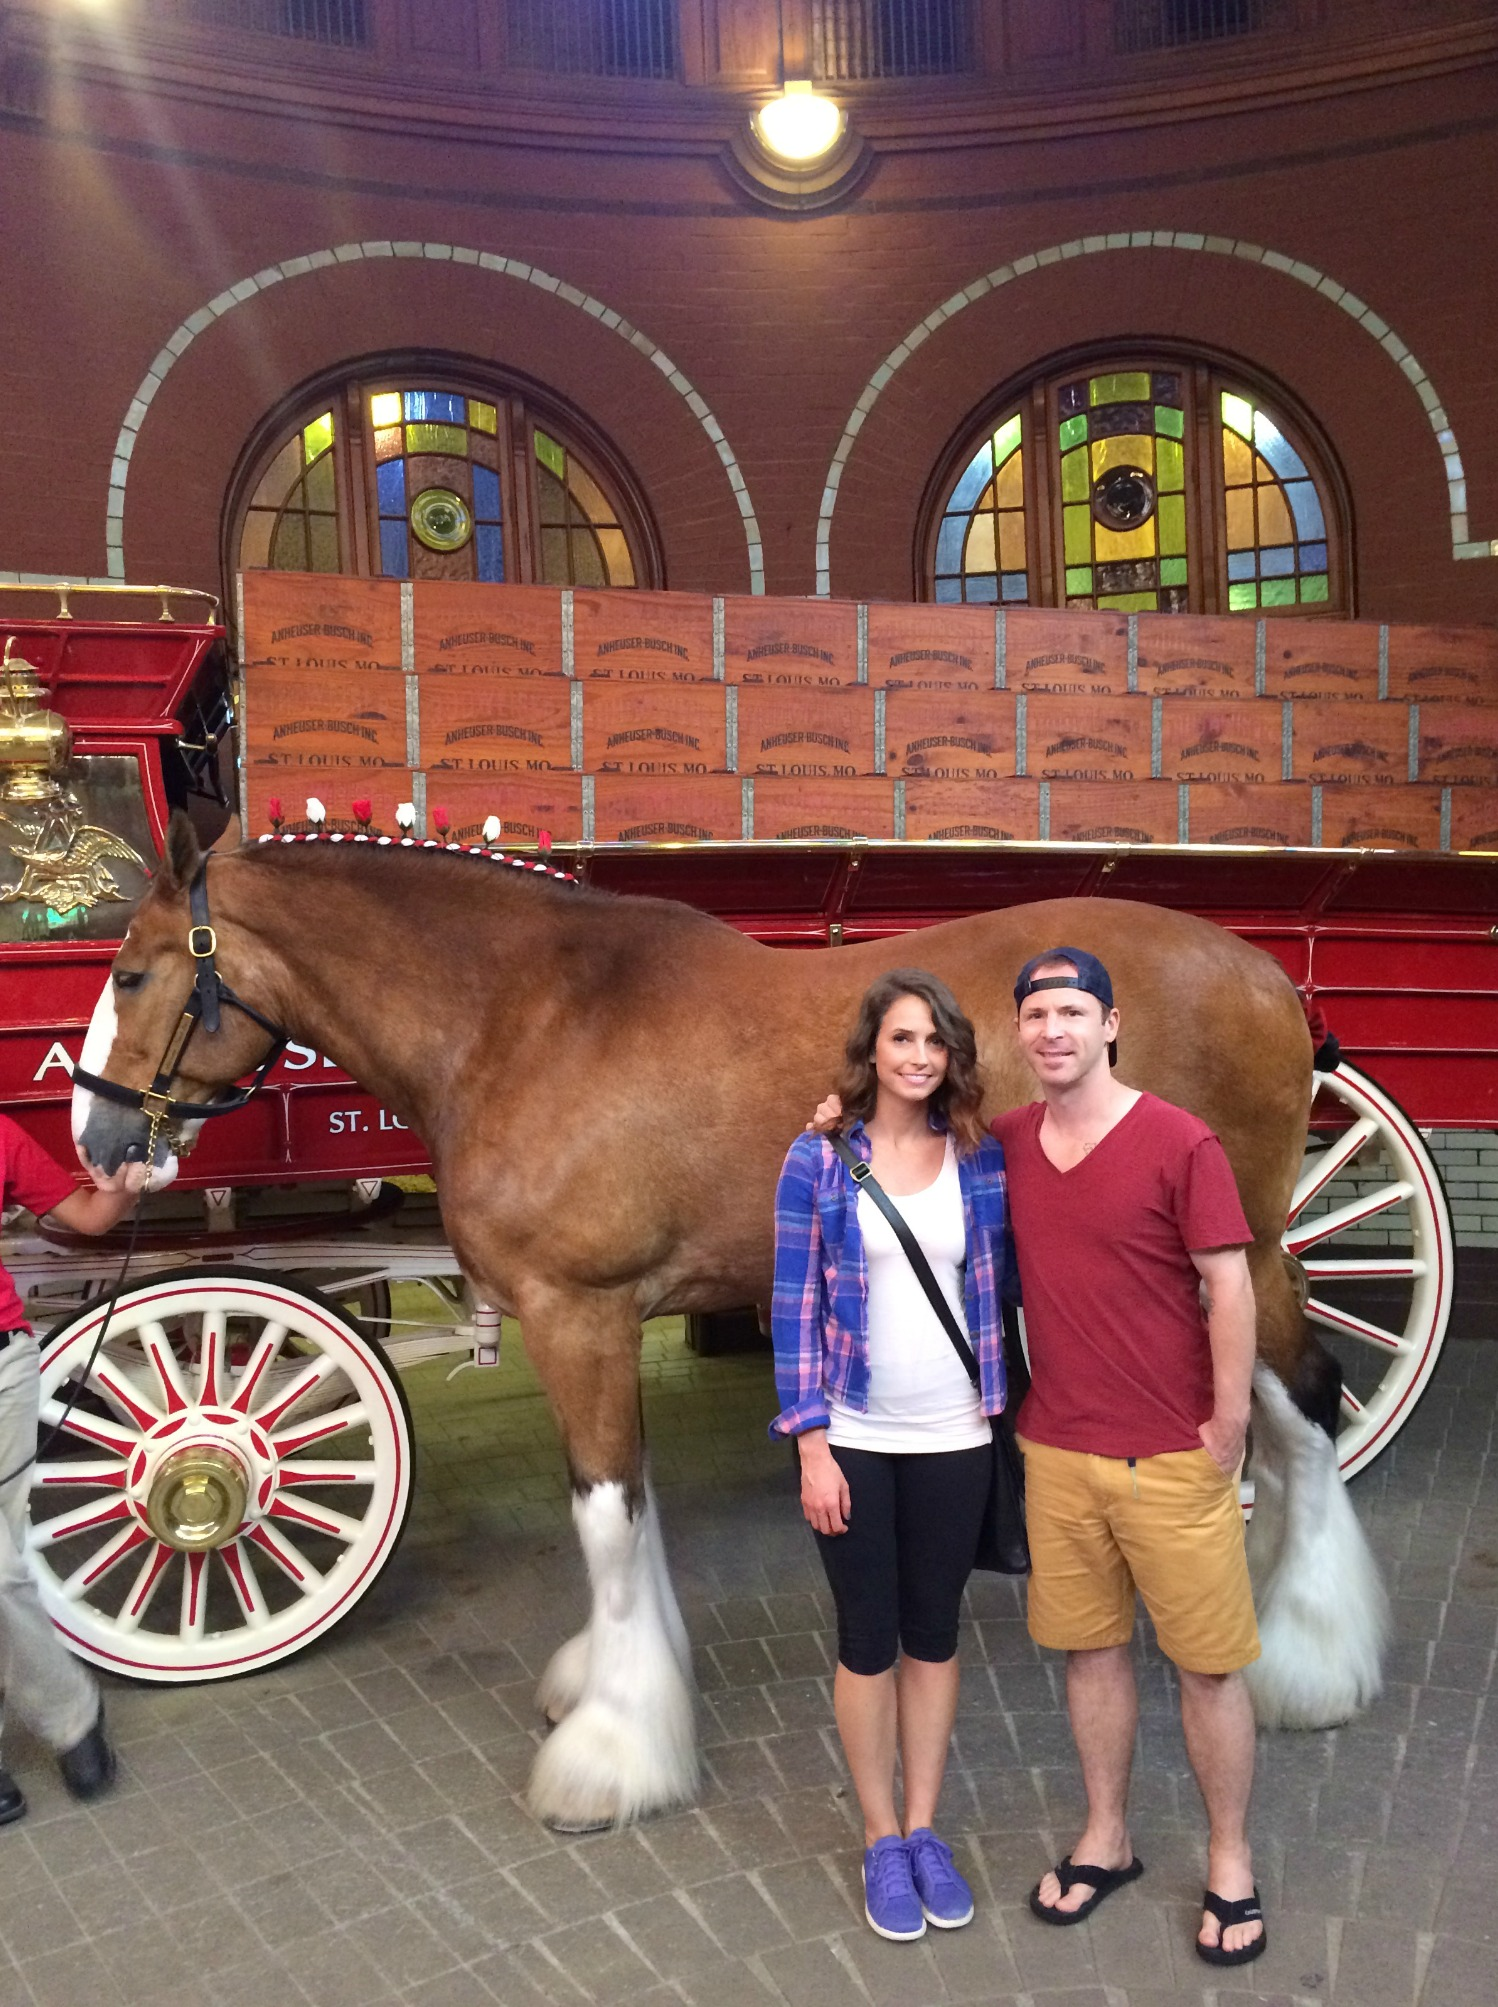 anheiser busch clydesdales